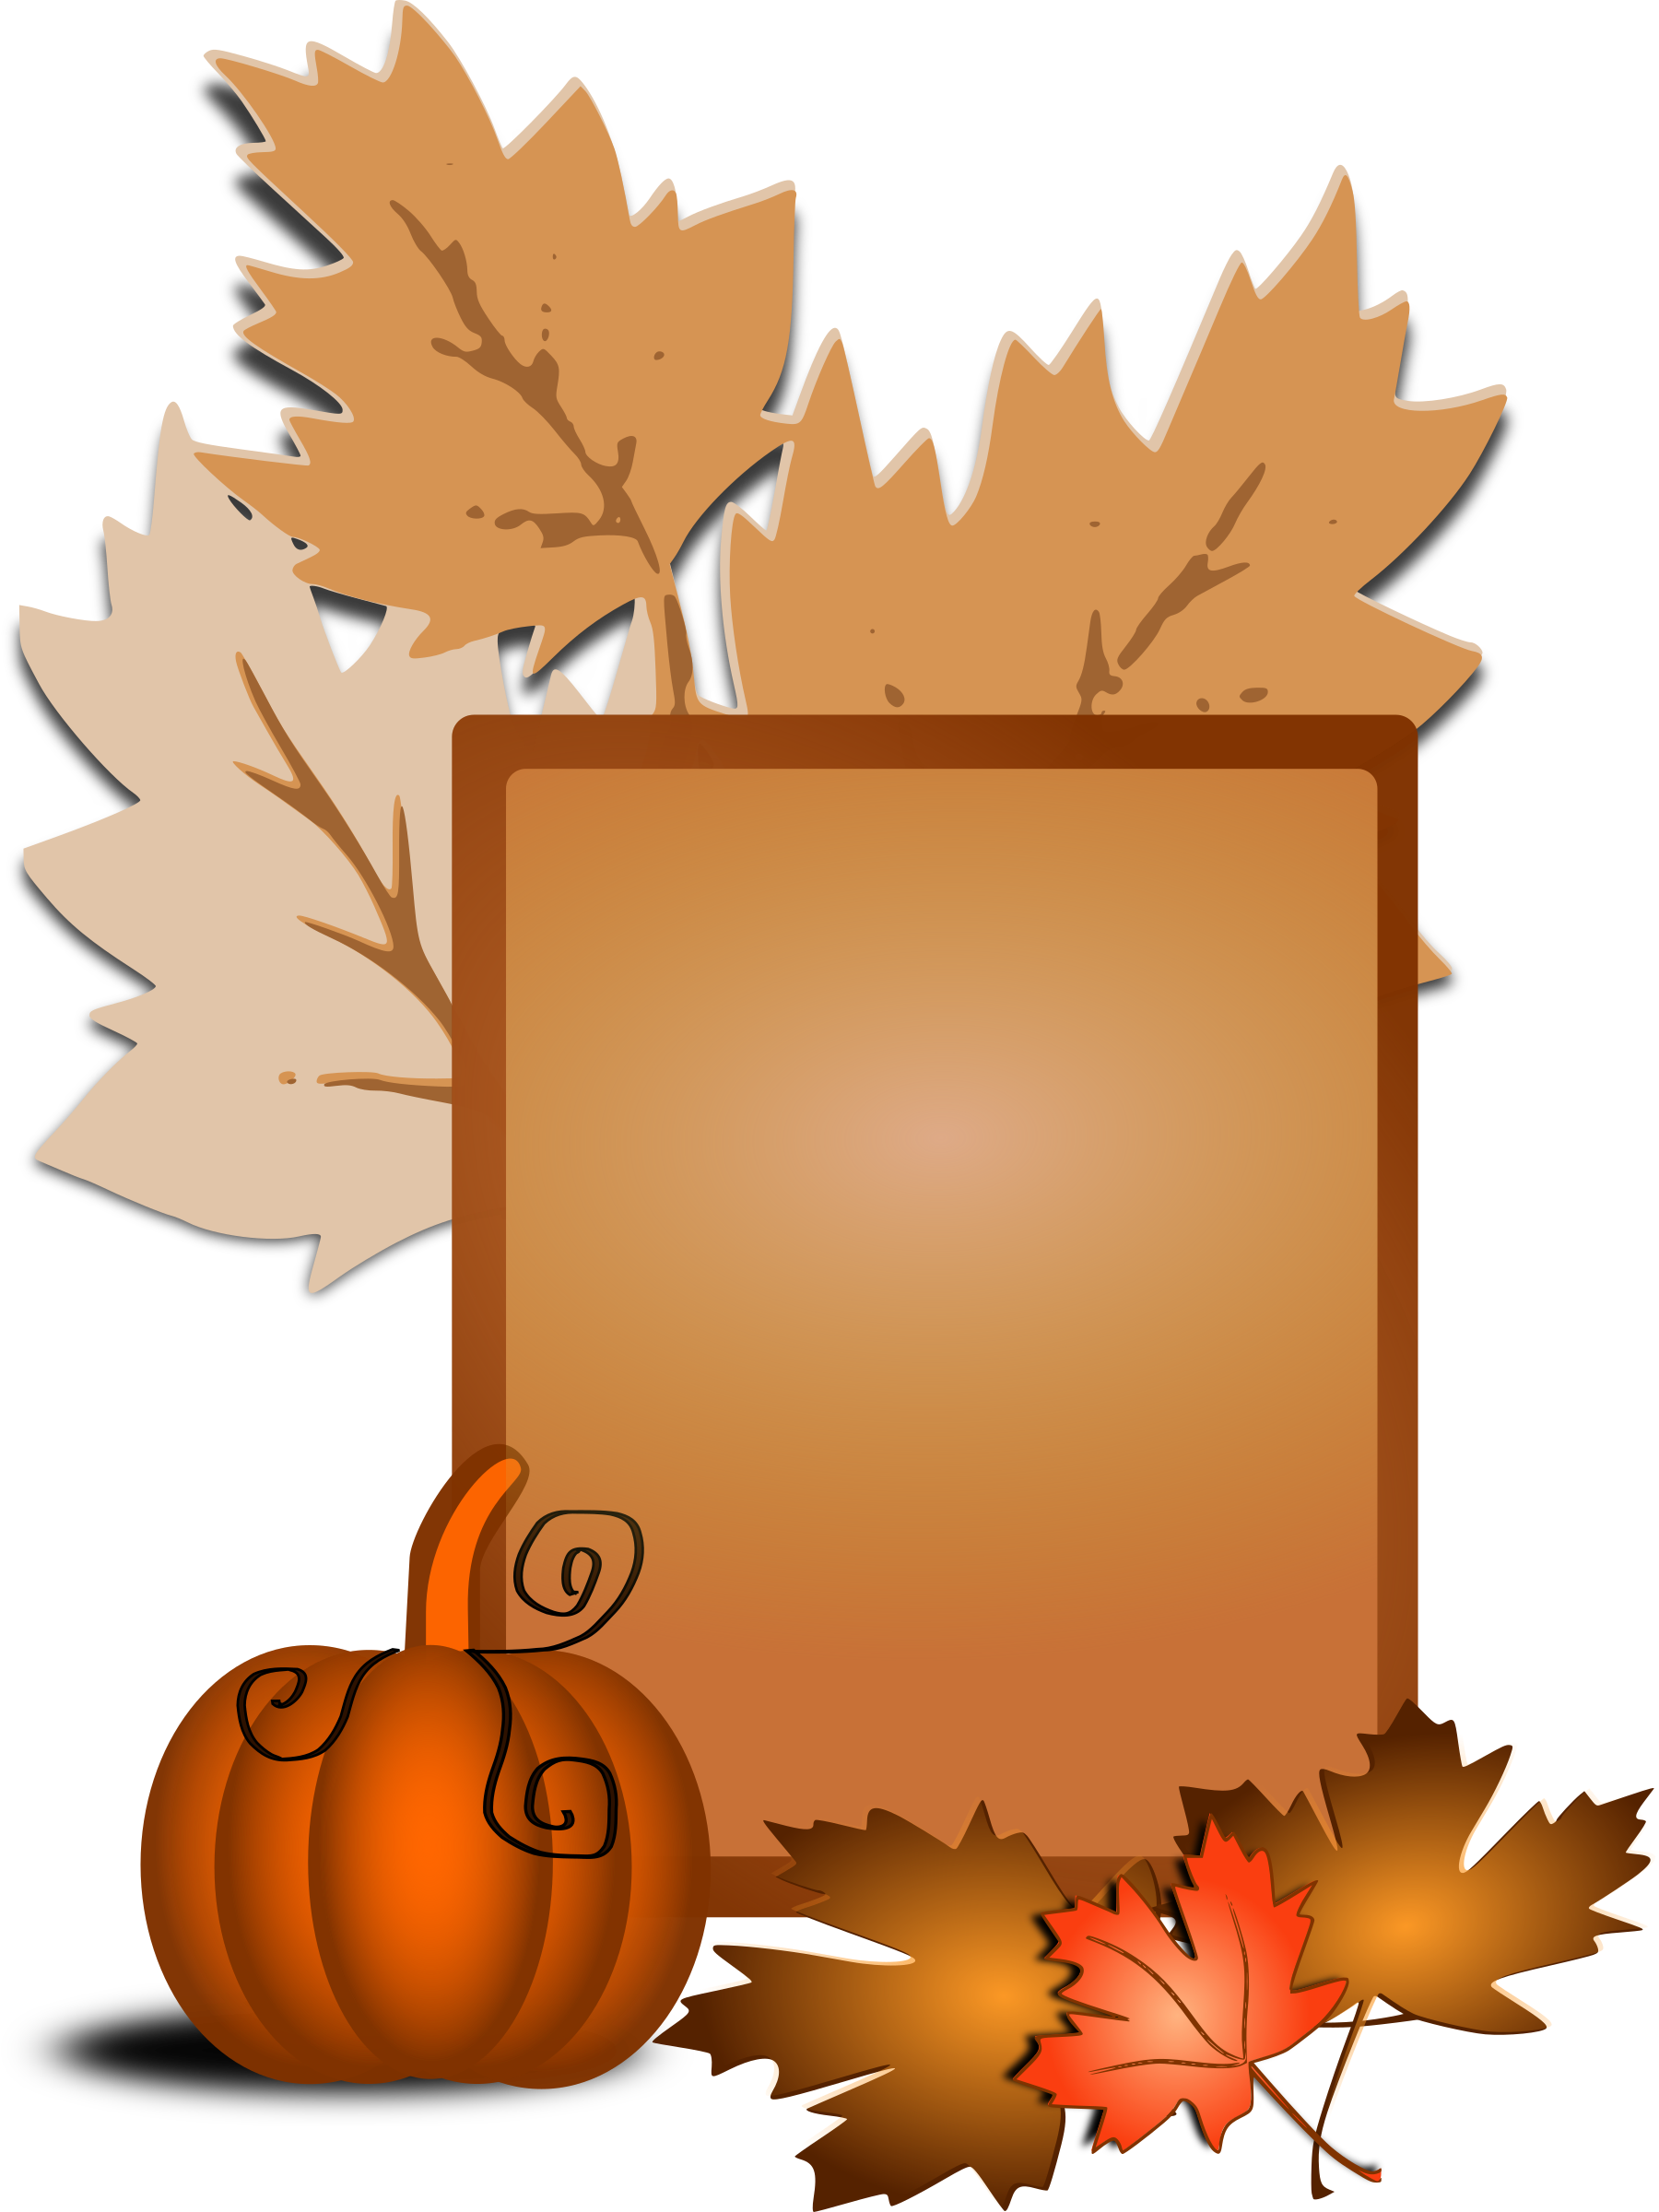 Fall leaves and pumpkin clipart clip art free download Clipart - Fall clip art clip art free download